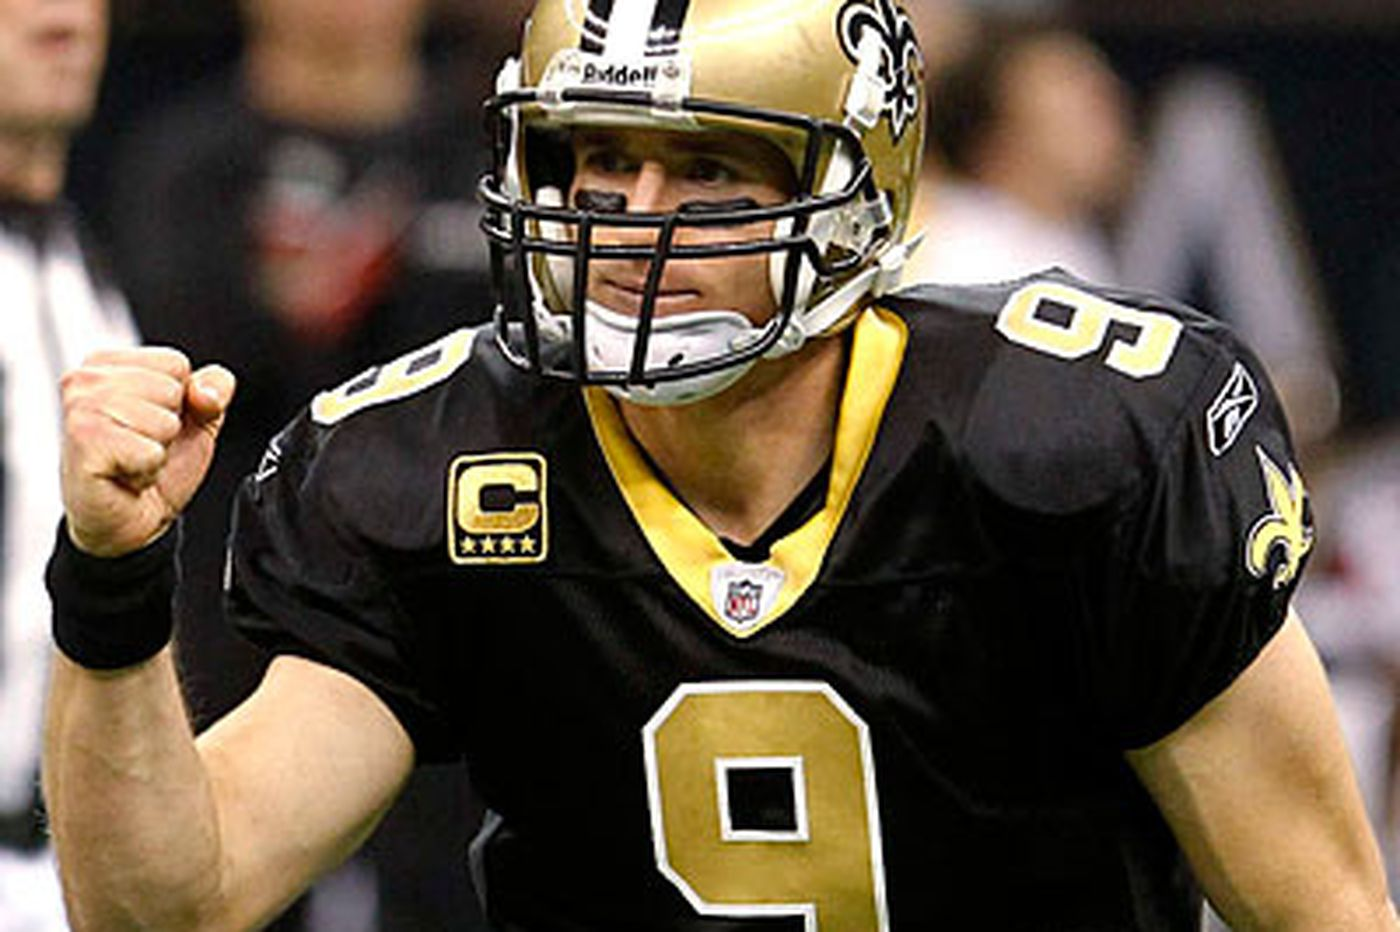 NFL: Brees sets NFL mark as Saints win division